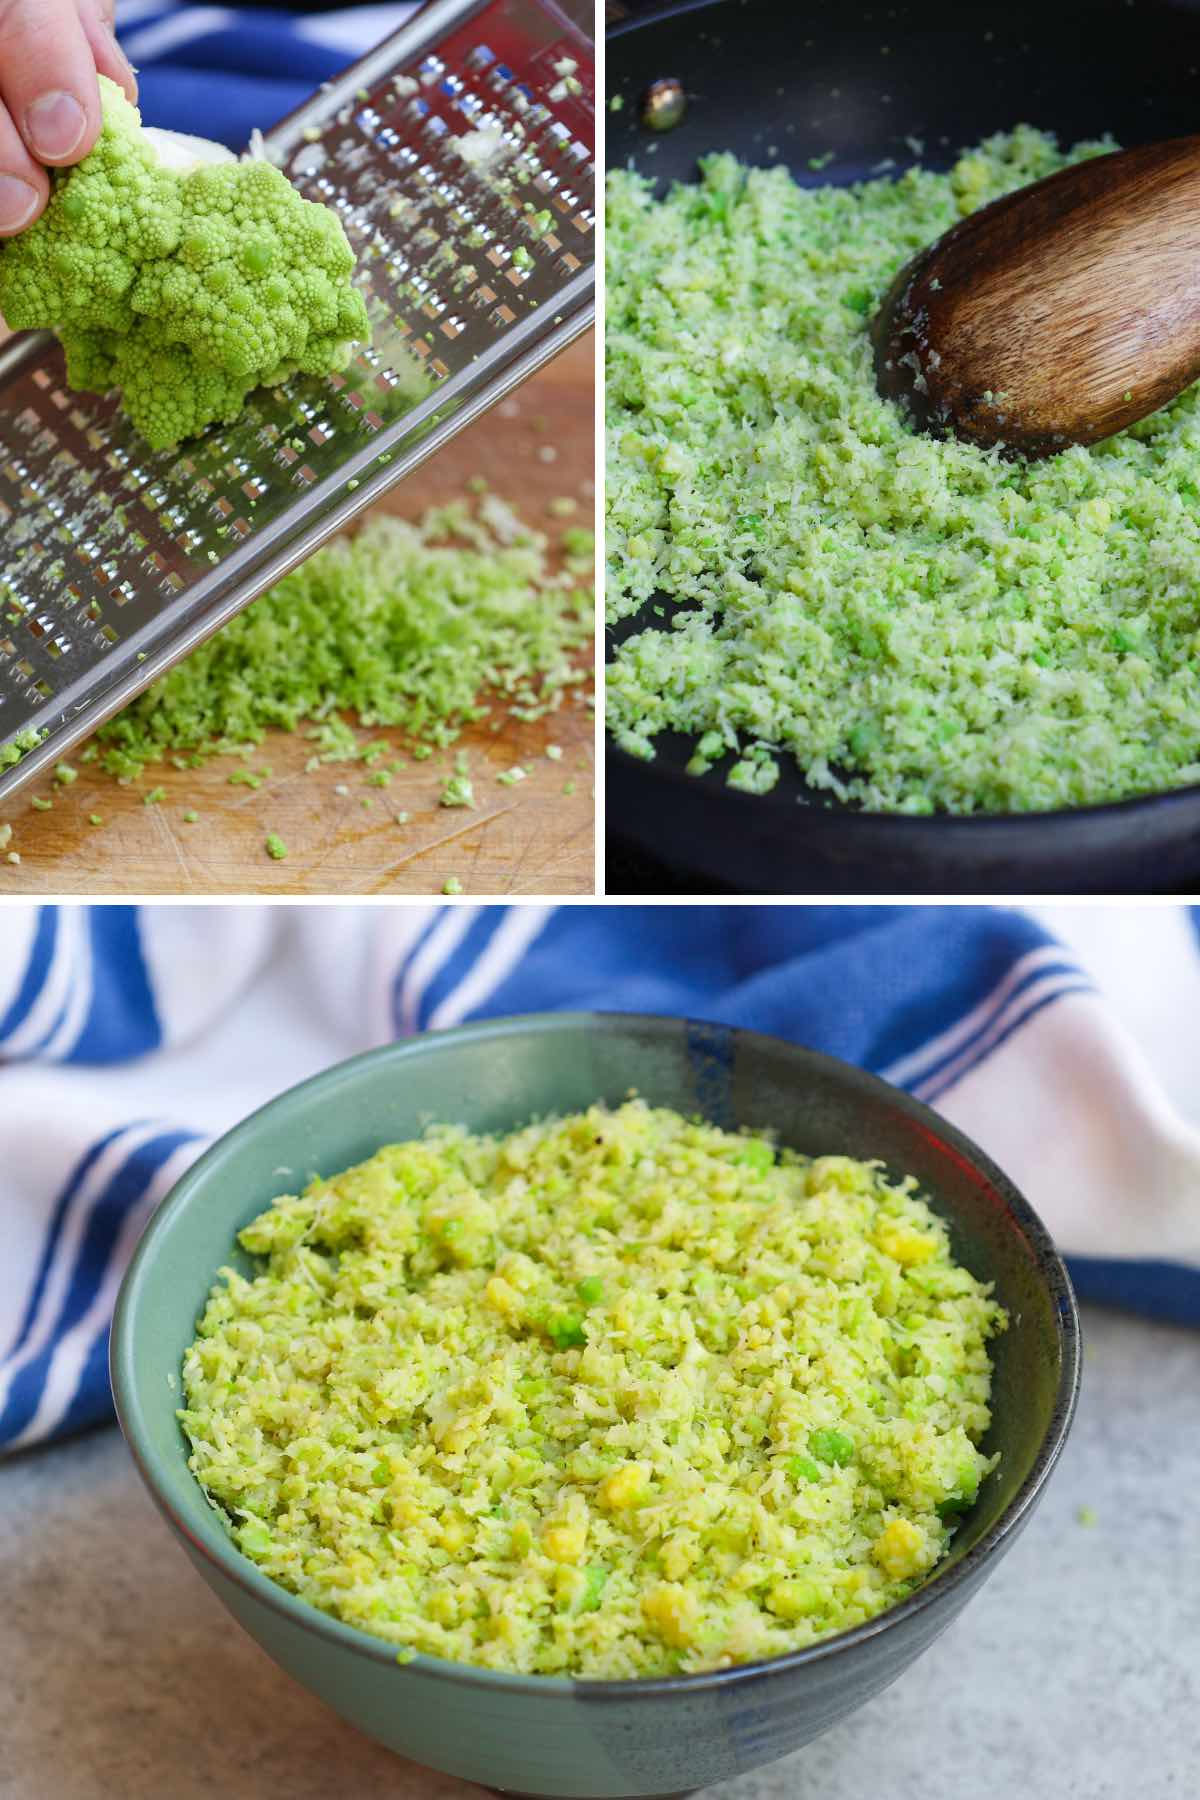 Preparing romanesco rice by grating, sauteing and service